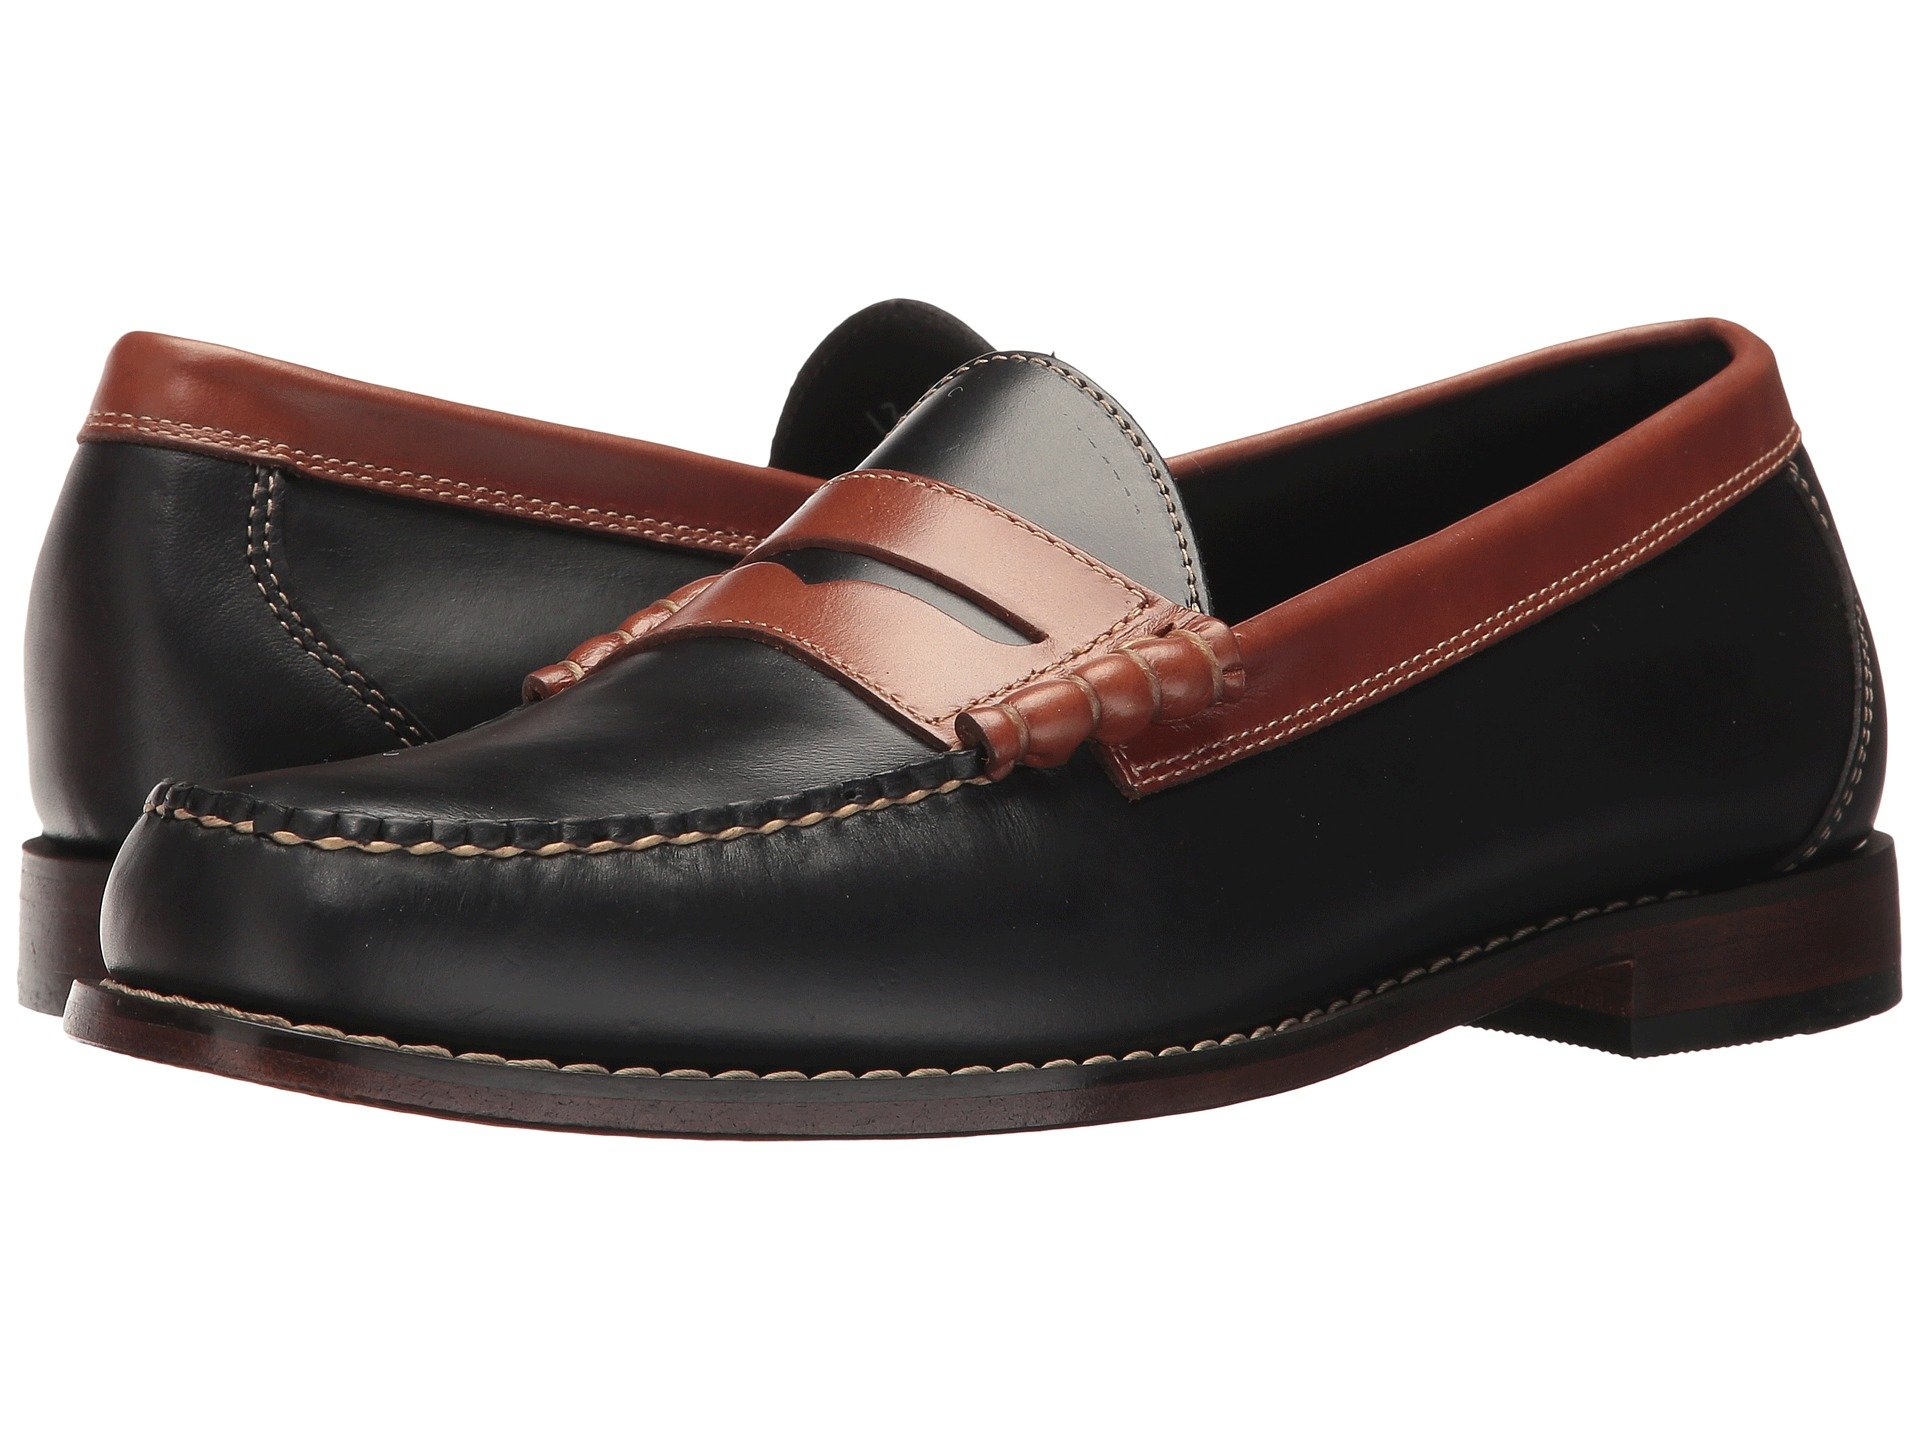 G.H.BASS&CO Larson Weejuns, Black/Saddle Tan Pull Up in Neutrals